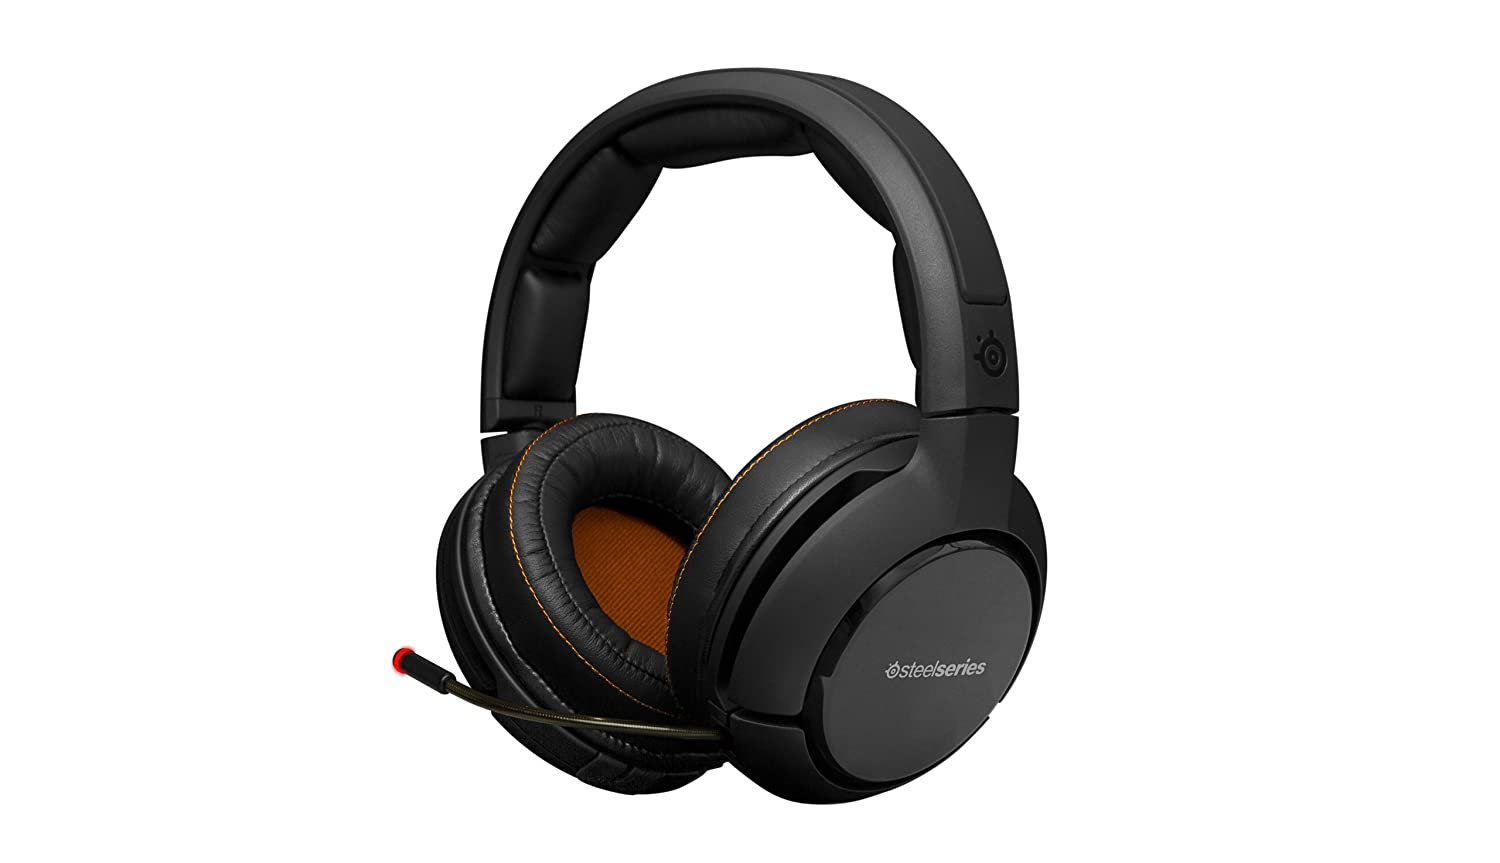 STEELSERIES H WIRELESS DRIVERS